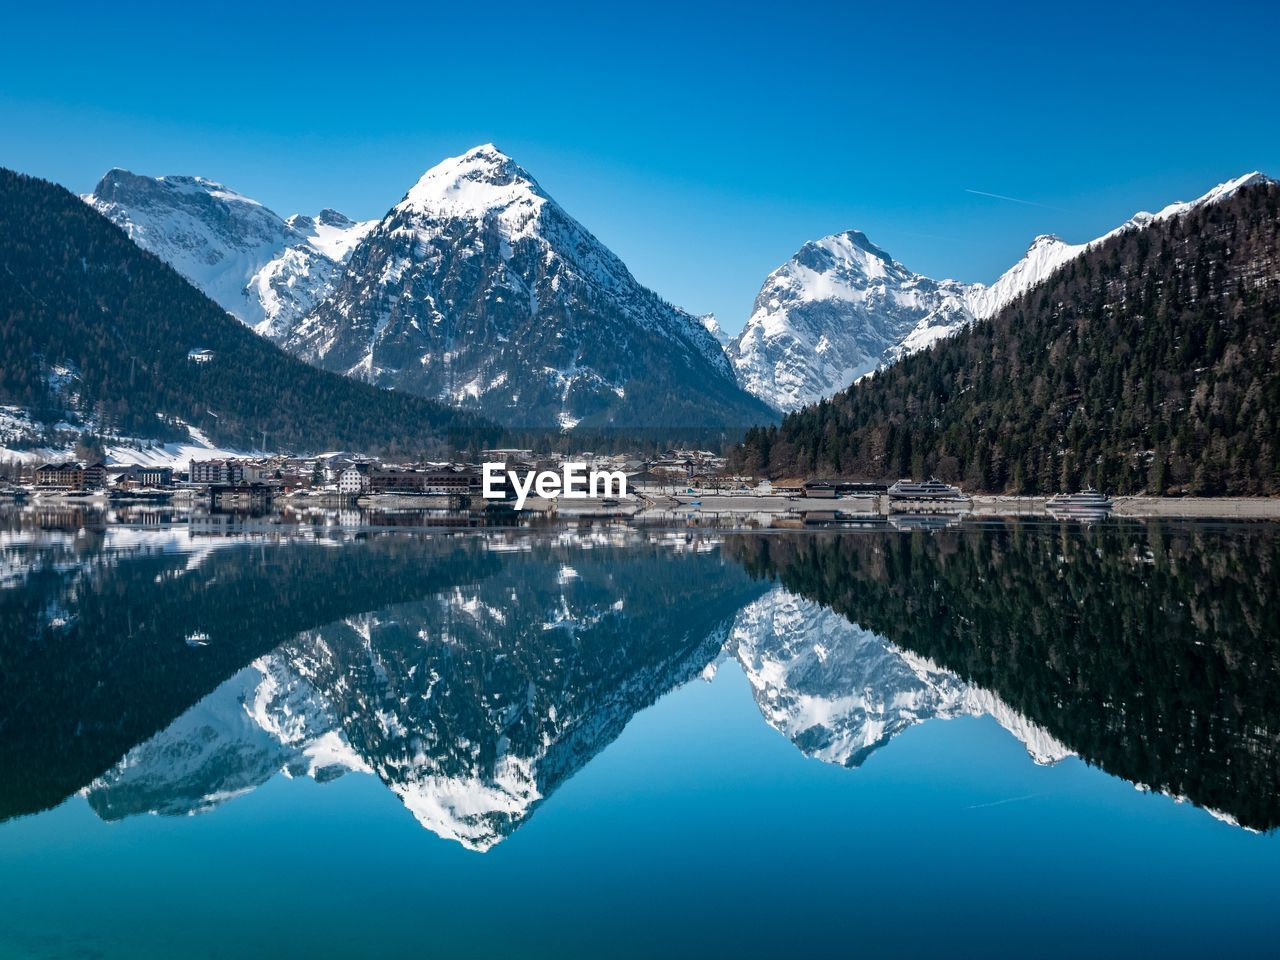 mountain, water, reflection, scenics - nature, cold temperature, lake, beauty in nature, snow, winter, sky, tranquility, waterfront, tranquil scene, mountain range, nature, blue, day, idyllic, snowcapped mountain, no people, outdoors, mountain peak